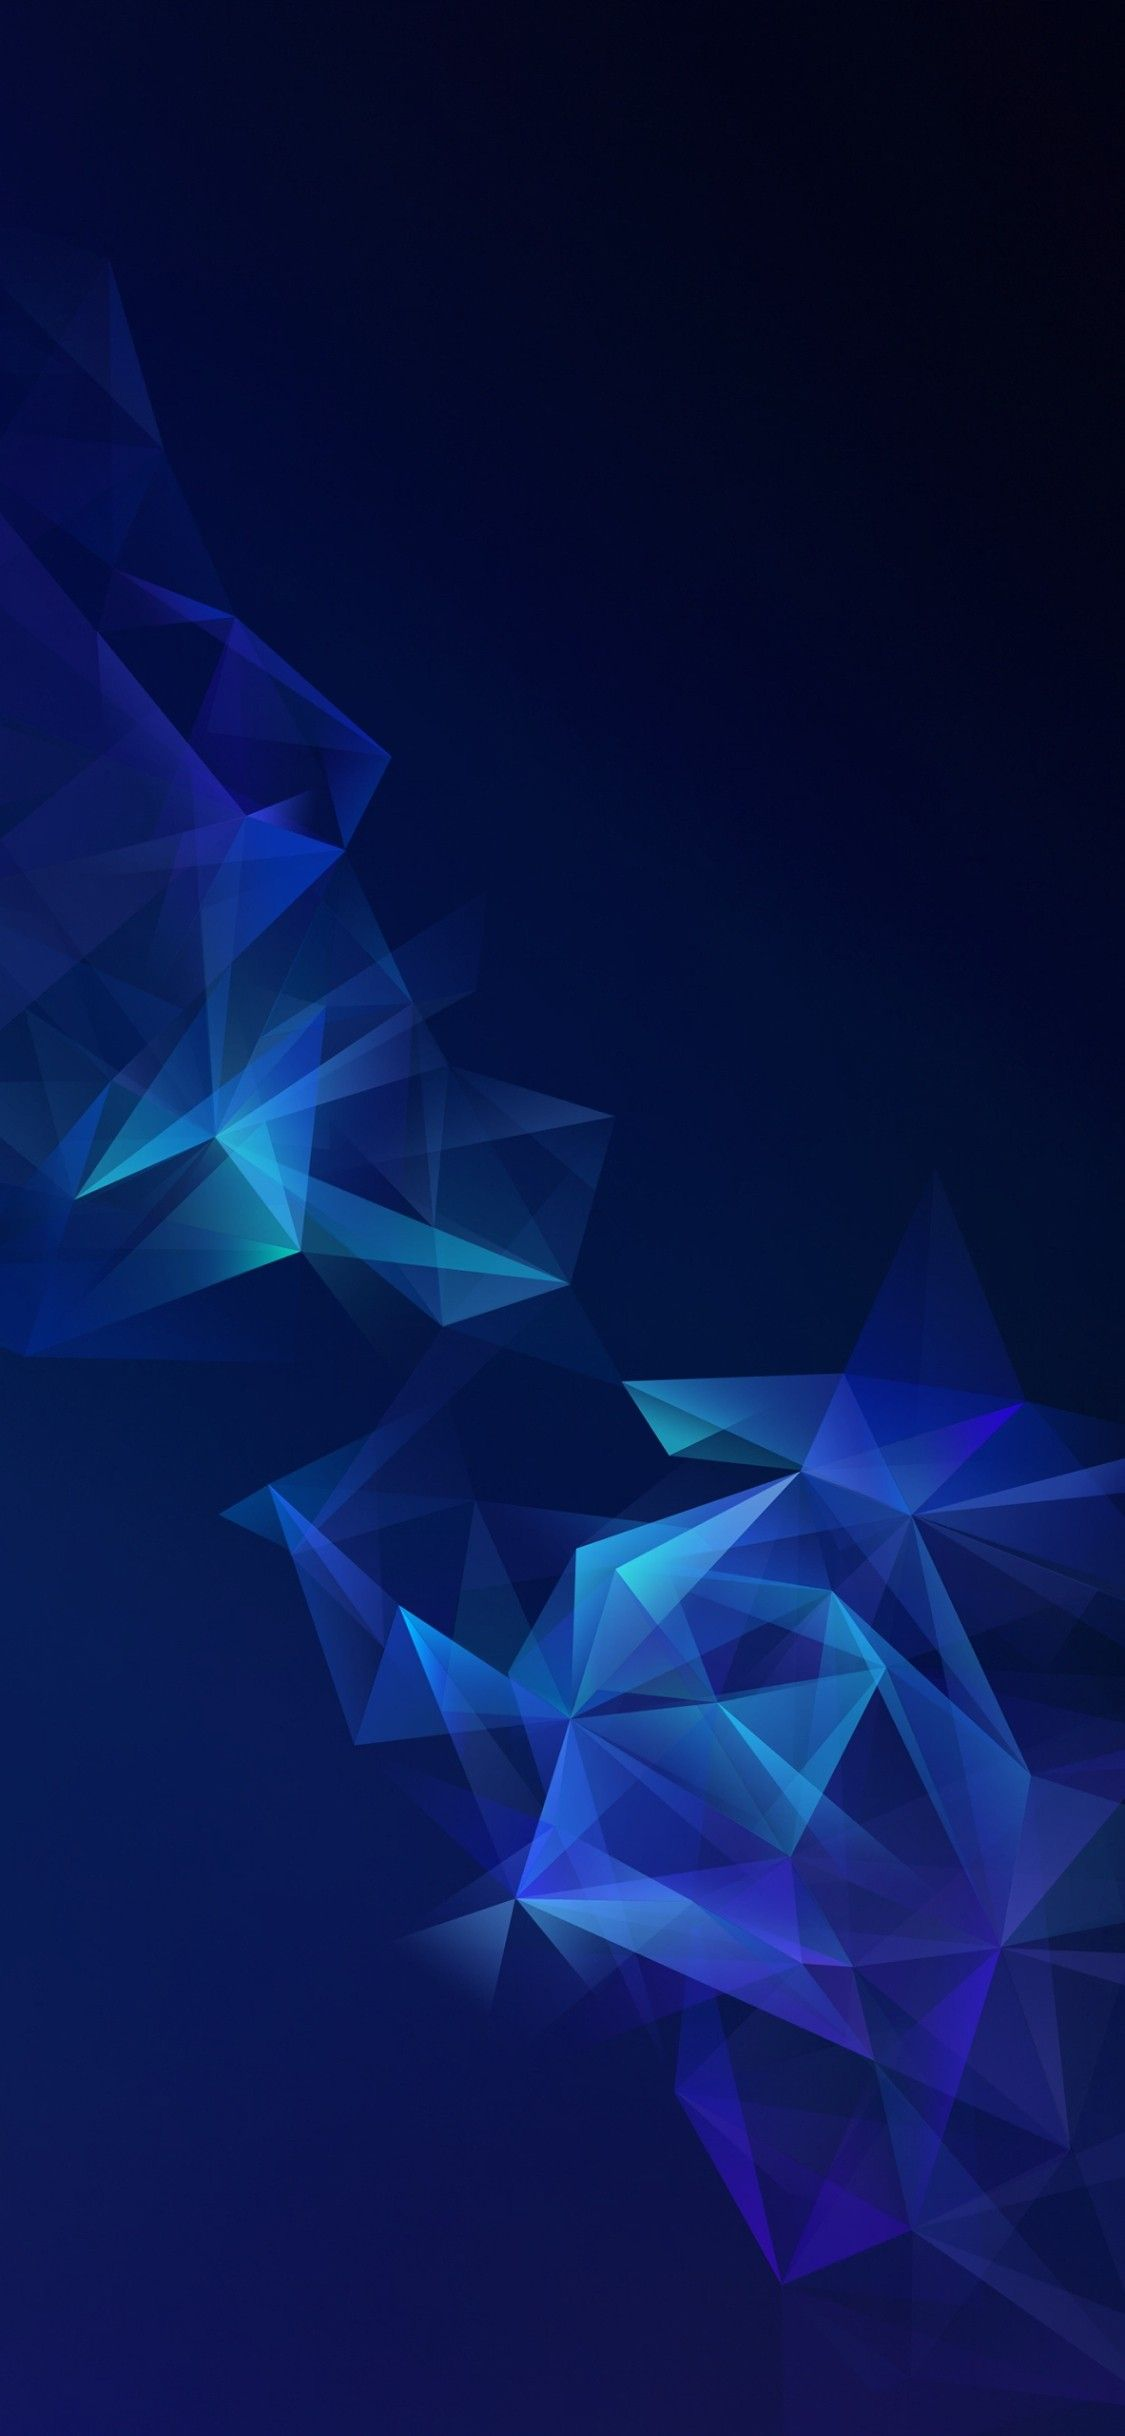 Blue, s9, s9 plus, wallpaper, galaxy, colour, abstract, digital art, s8, s9, walls, Samsung ...